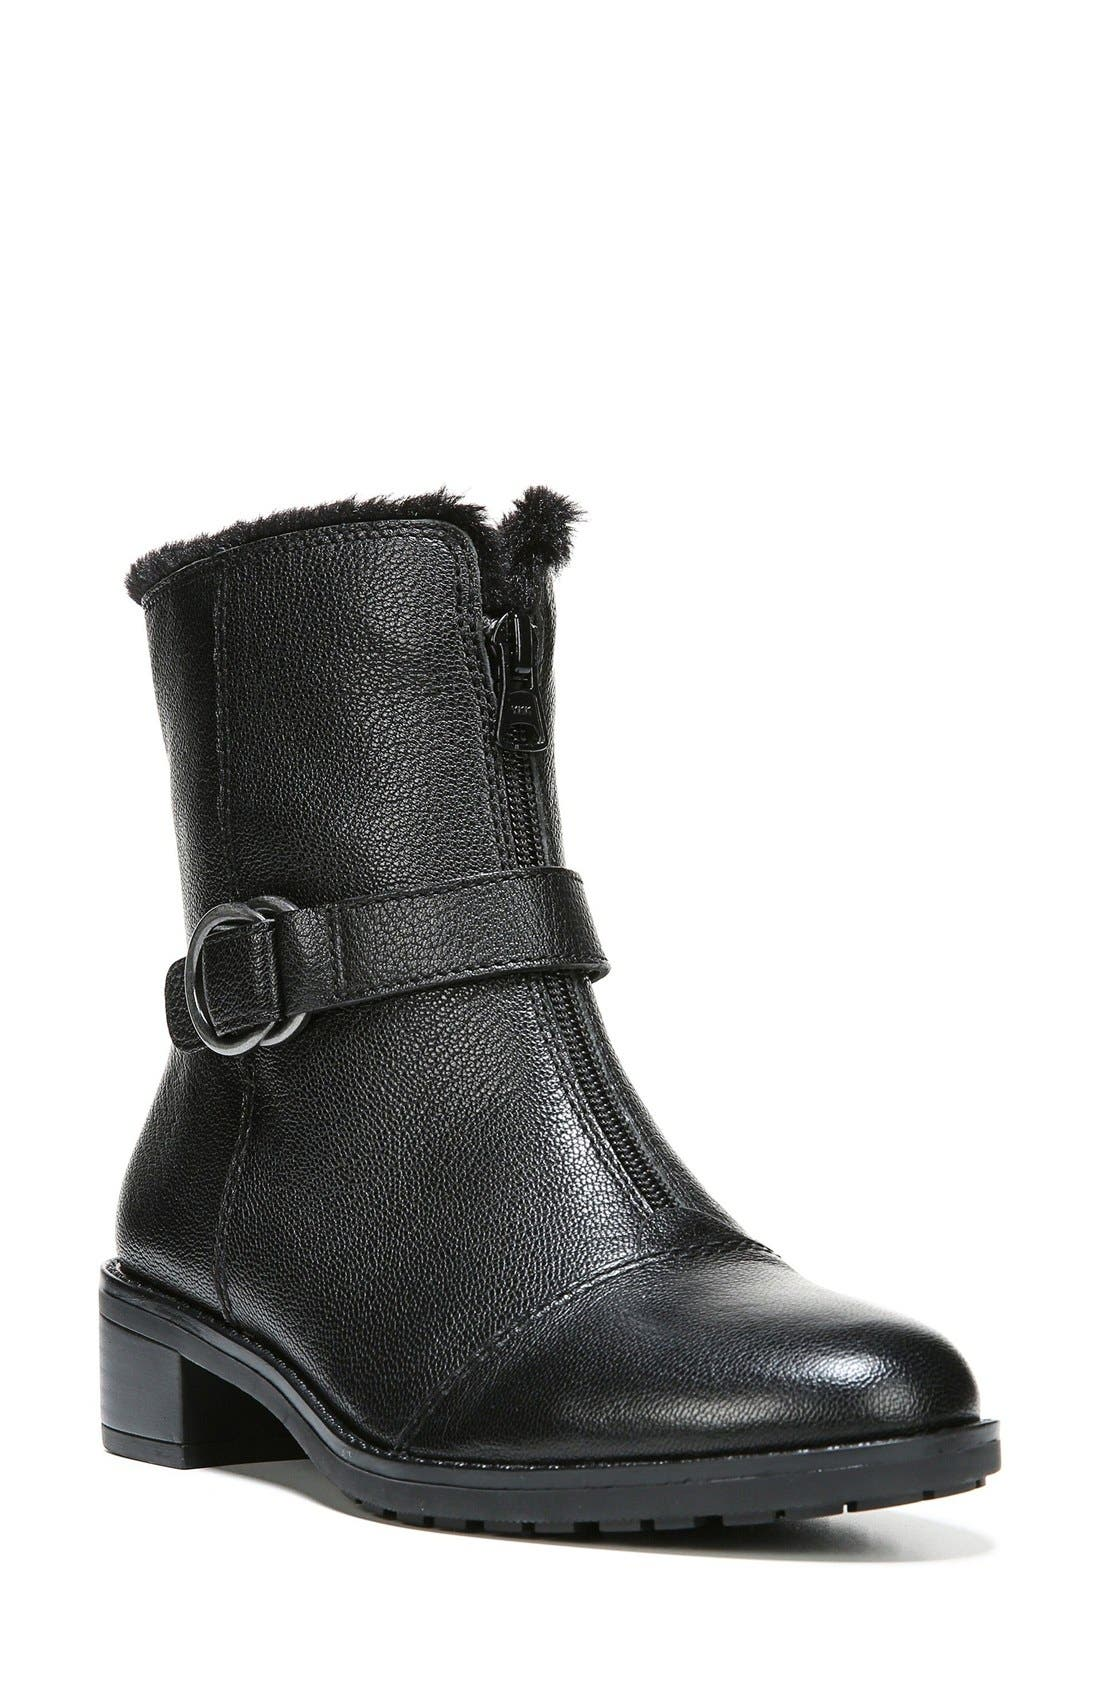 Alternate Image 1 Selected - Naturalizer 'Madera' Boot (Women)